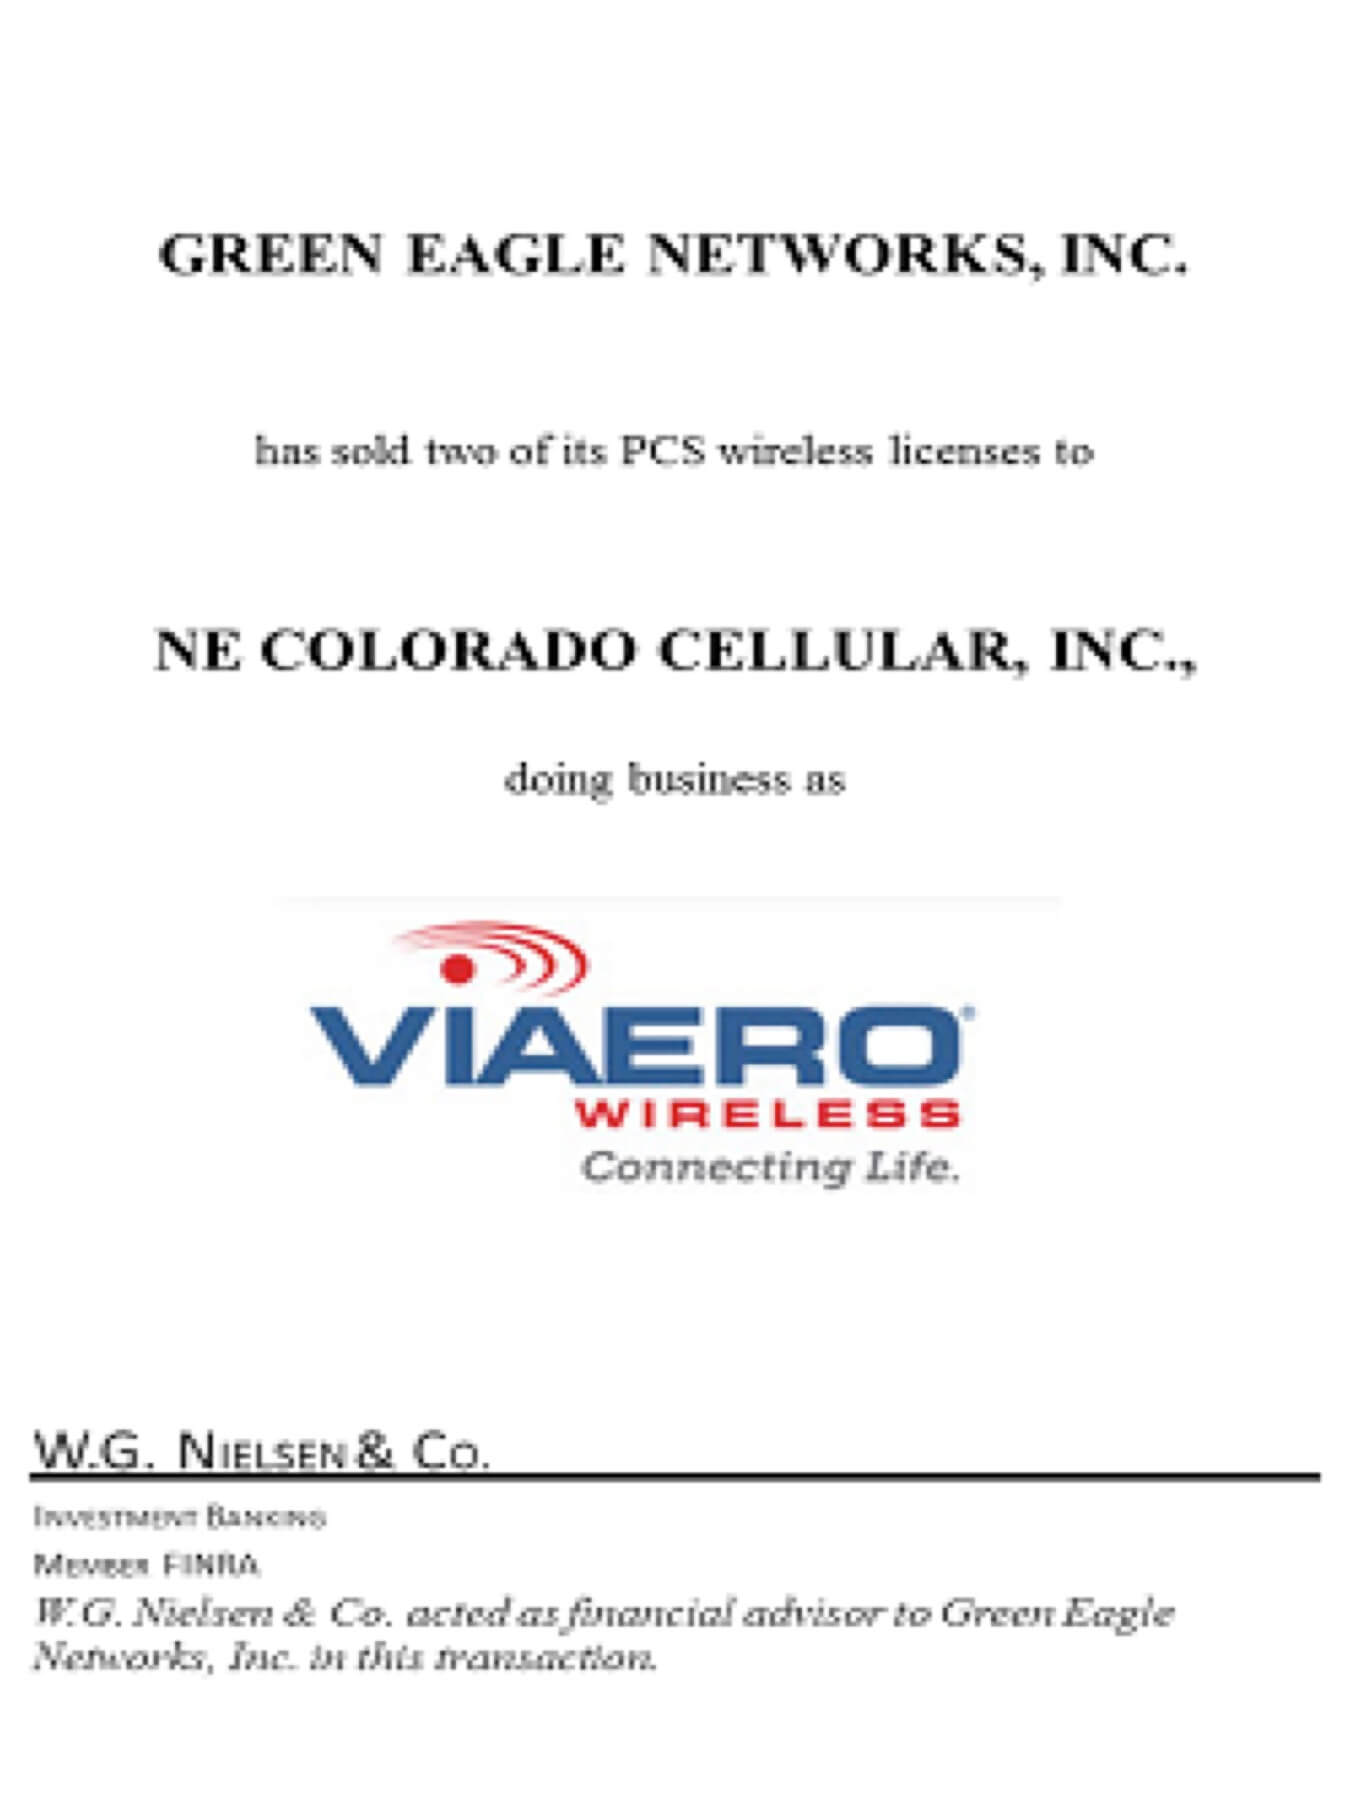 green eagle networks investment banking transaction